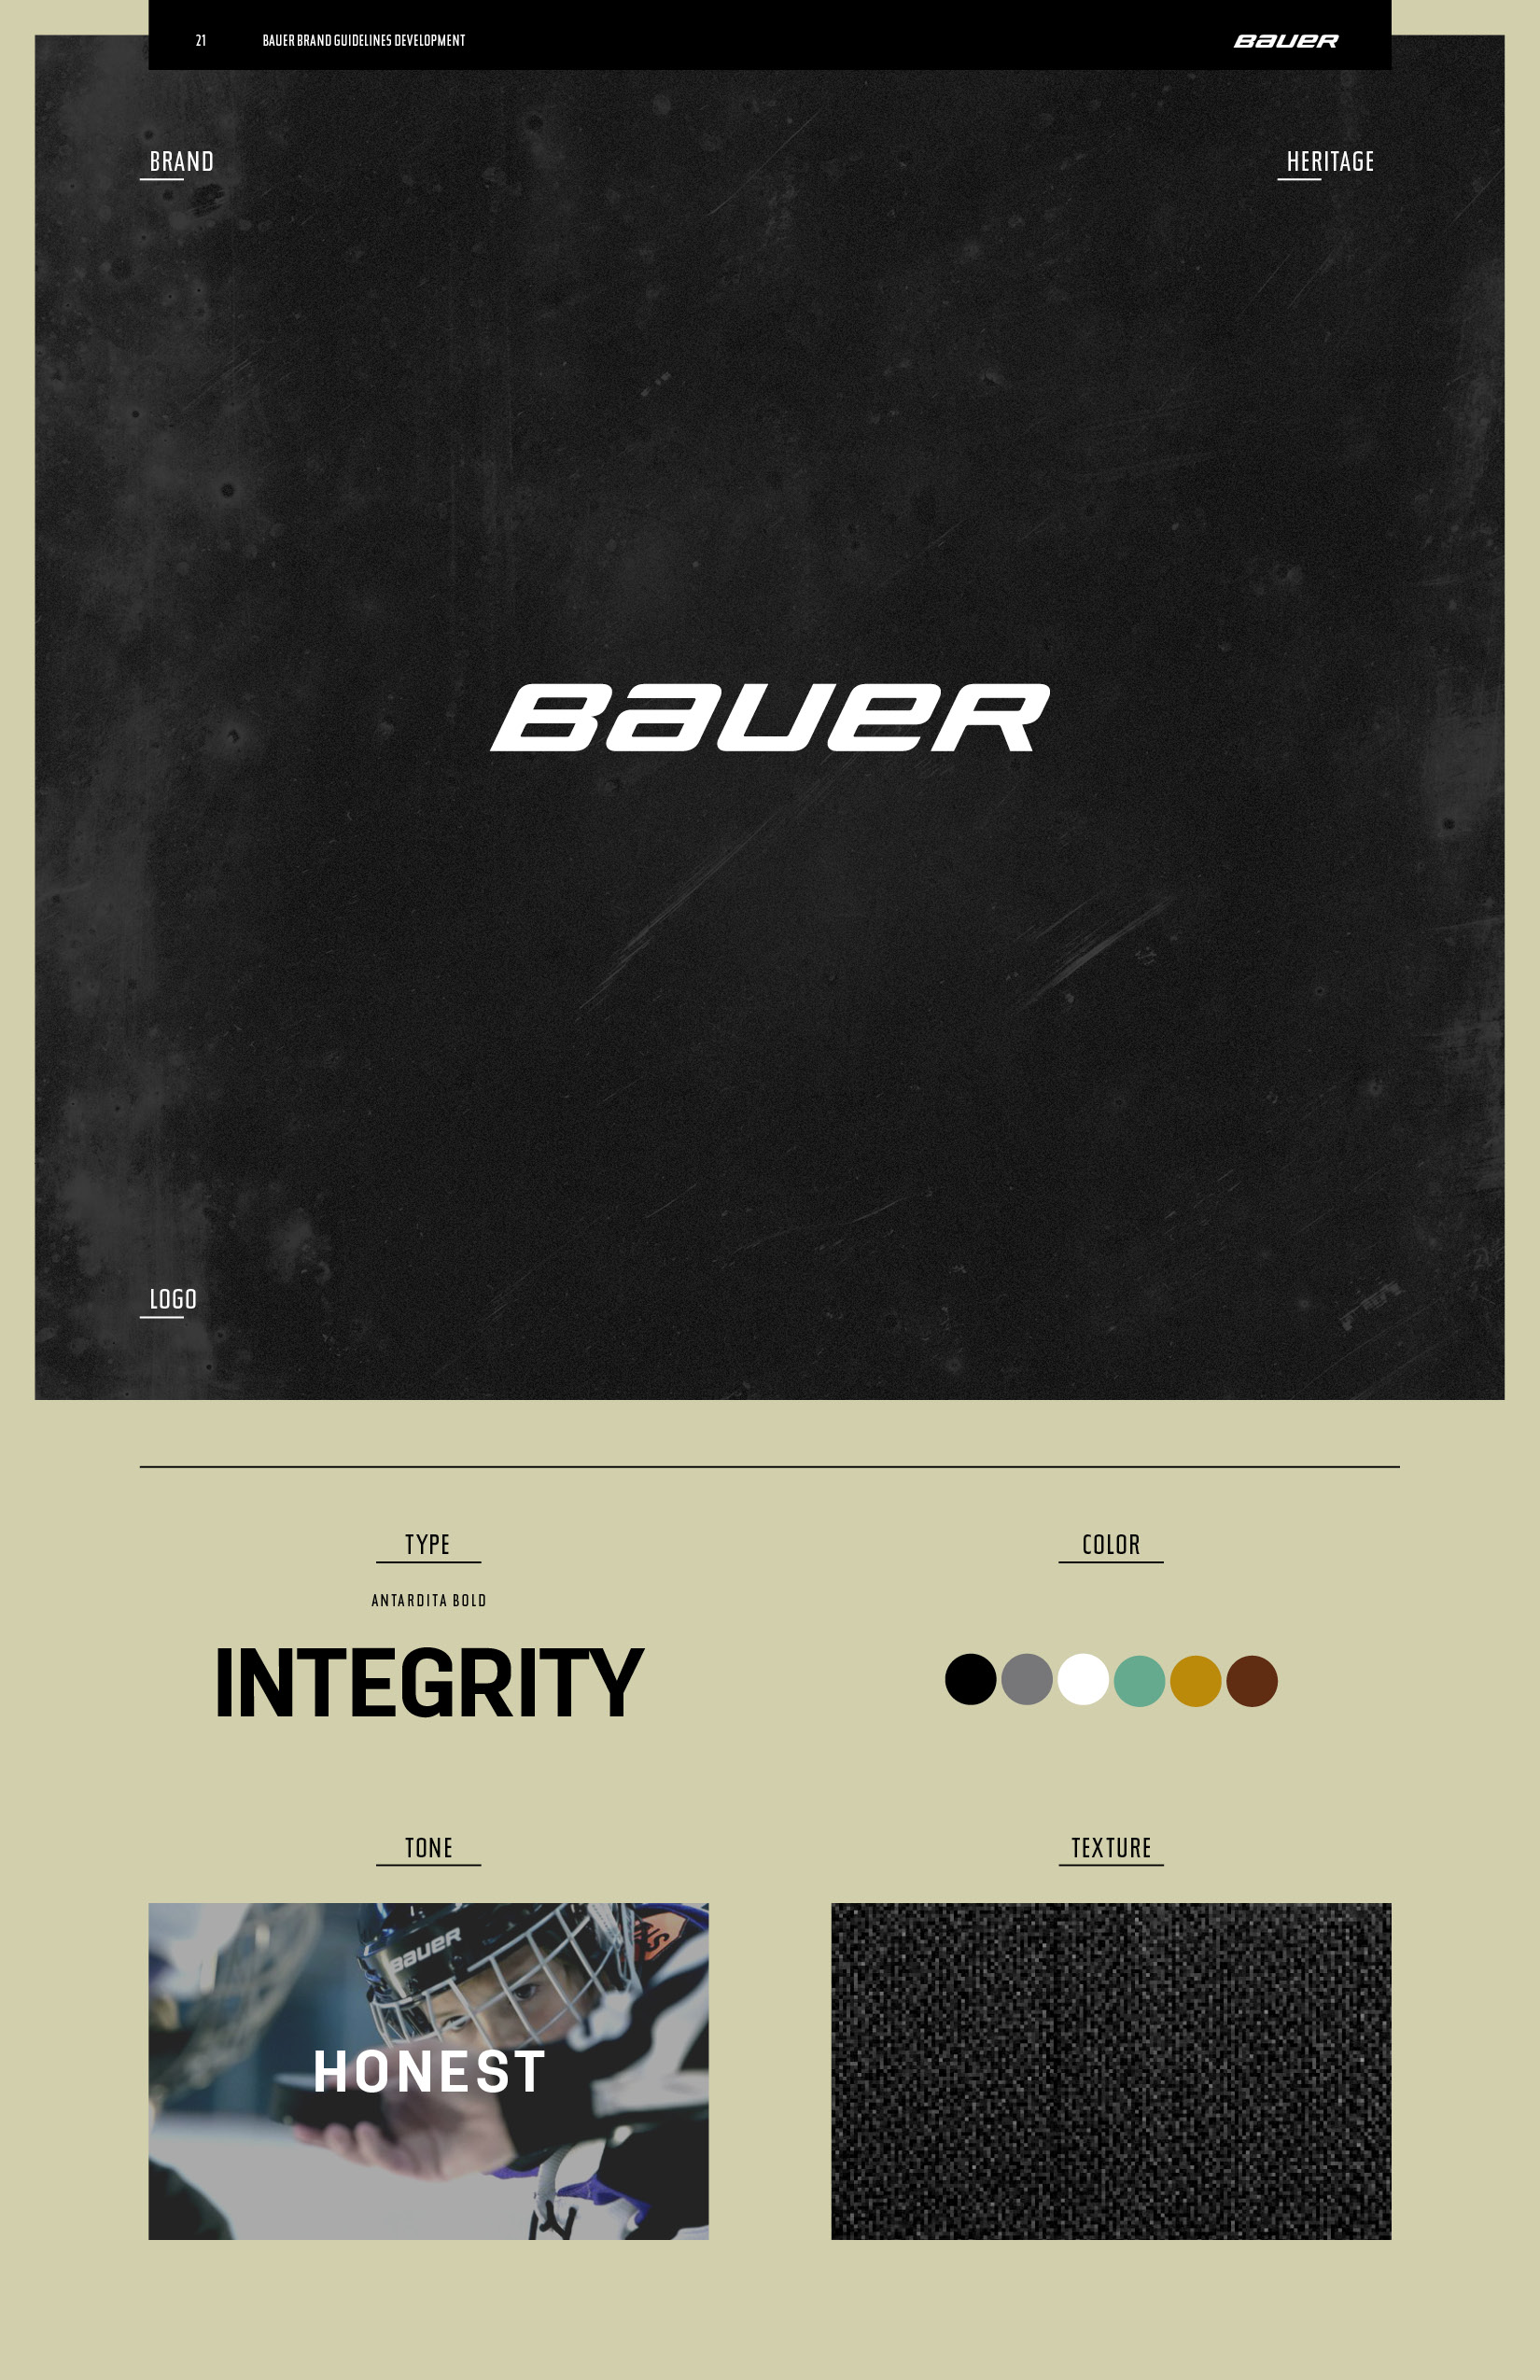 bauer_toolkit21.jpg